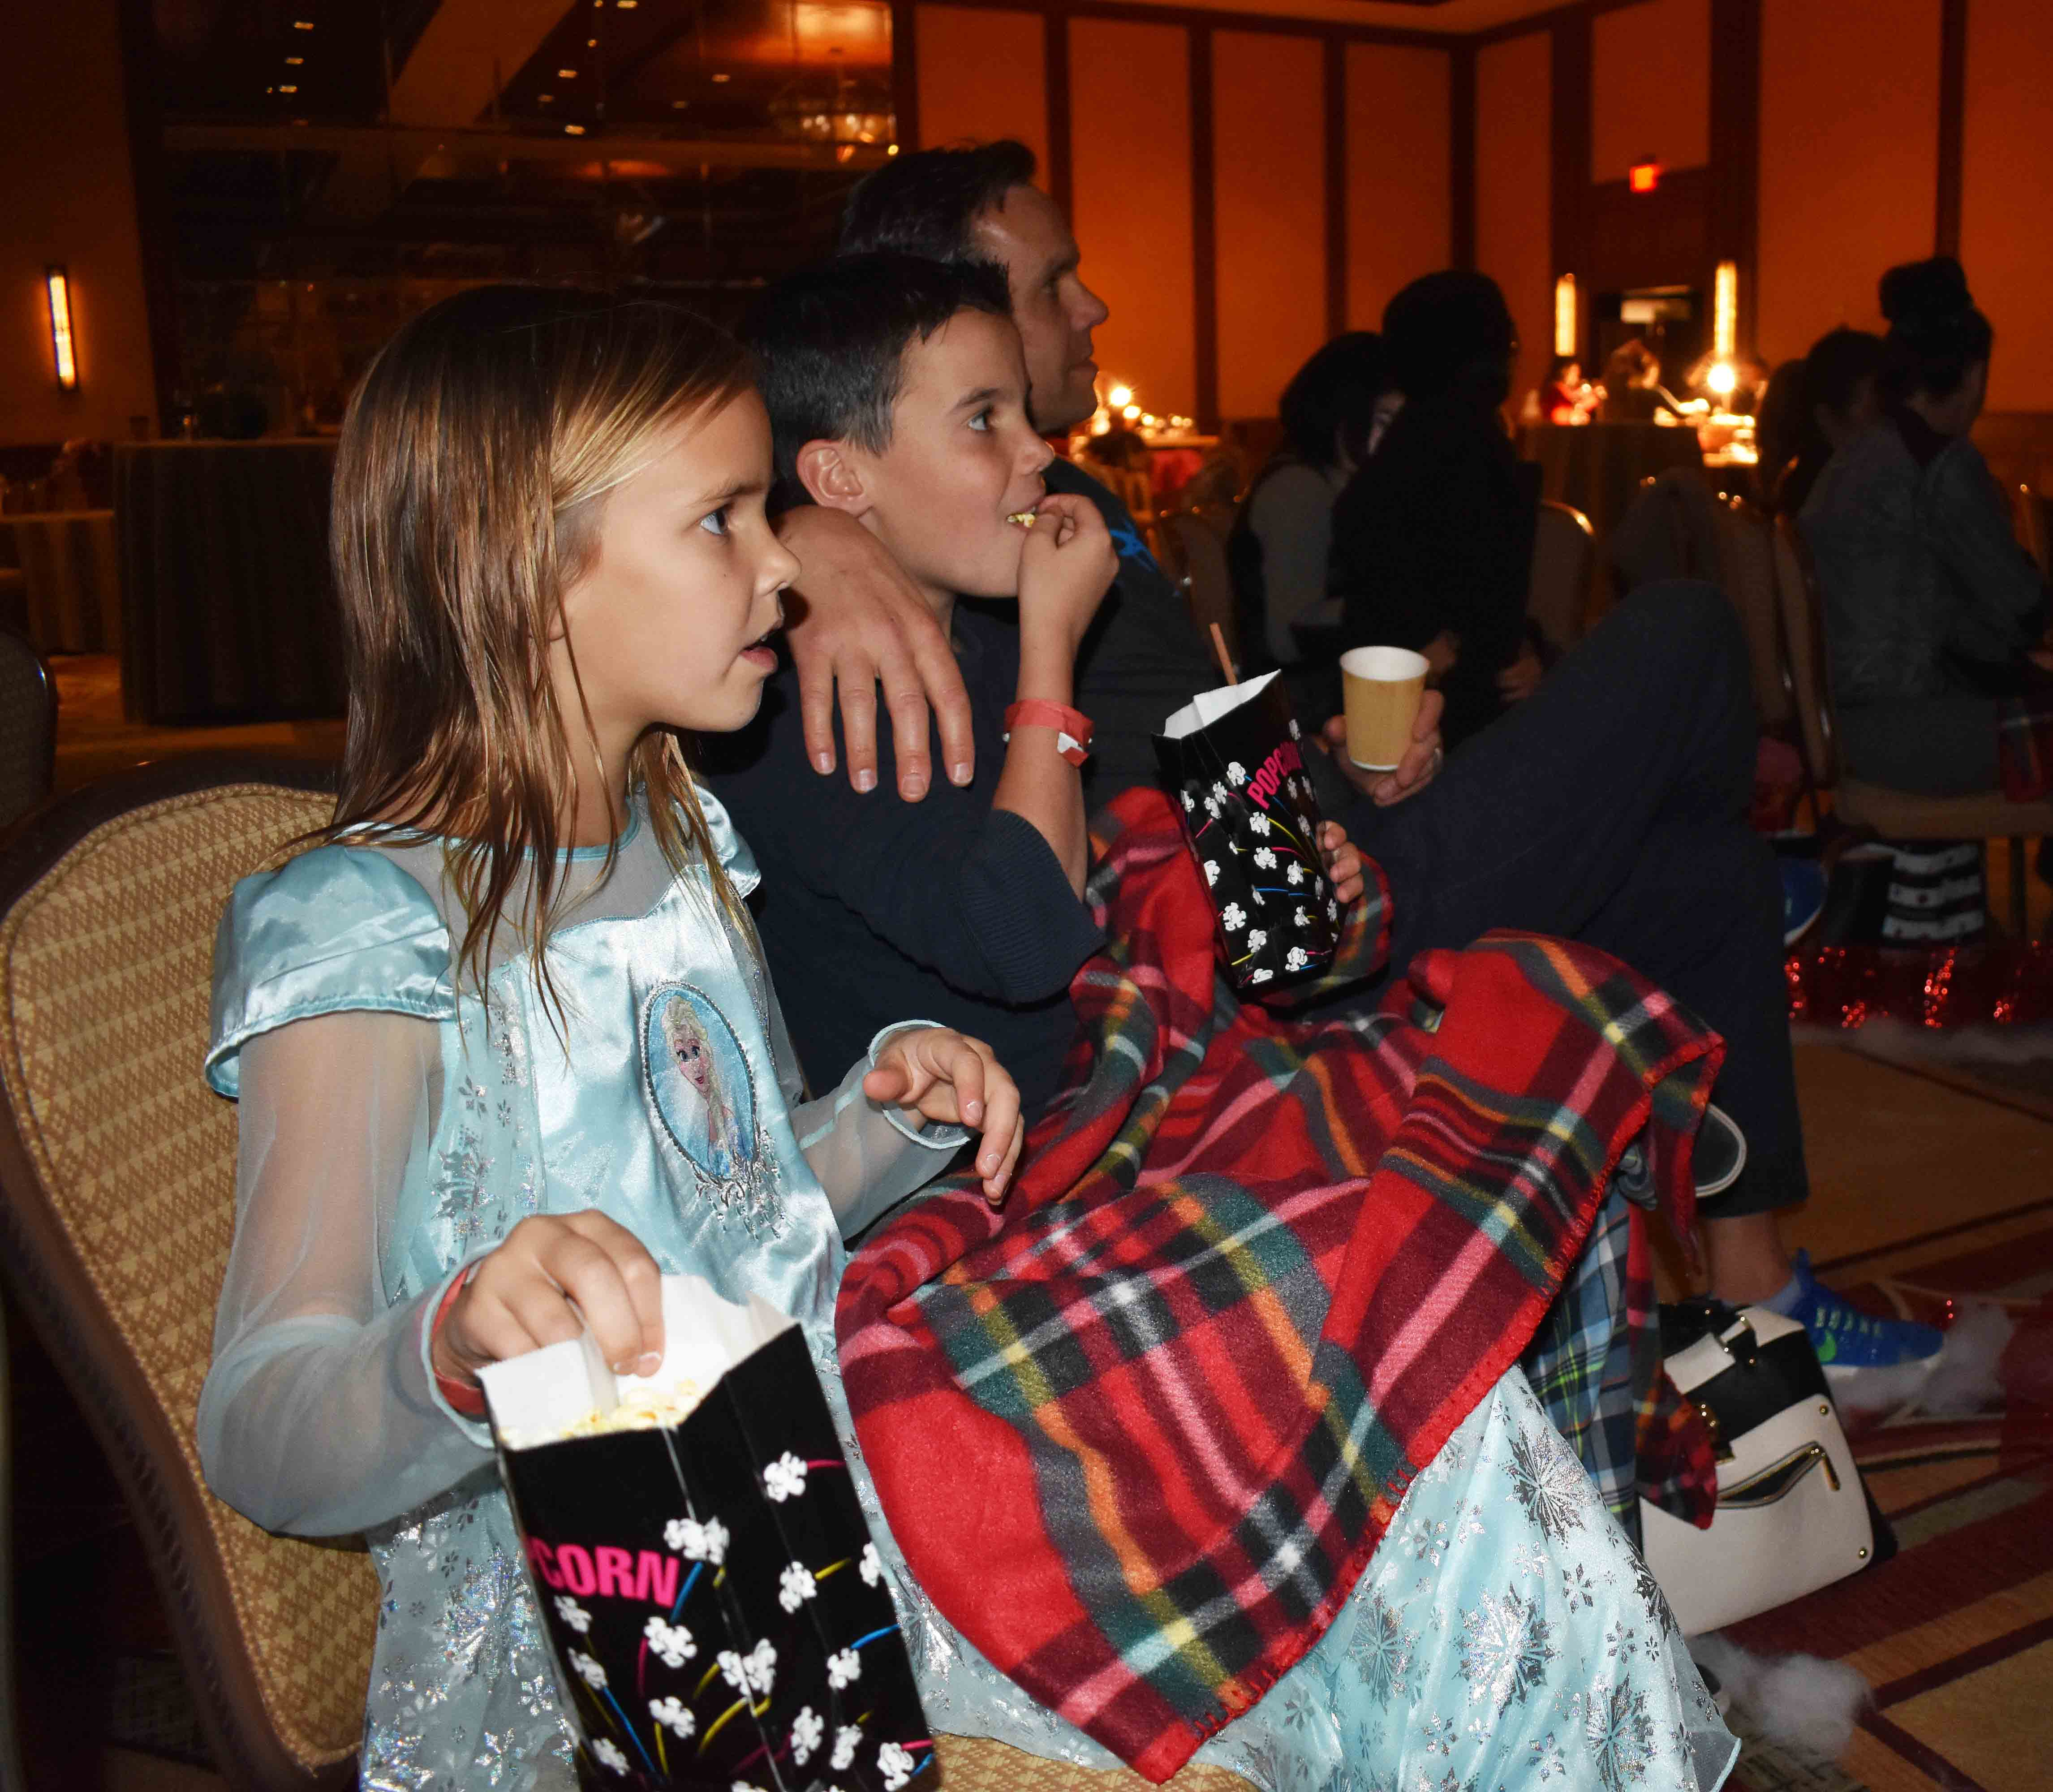 Arizona Four Seasons Christms + Homemade Hot Chocolate. Festive Flicks Christmas at Four Seasons Scottsdale Troon North.